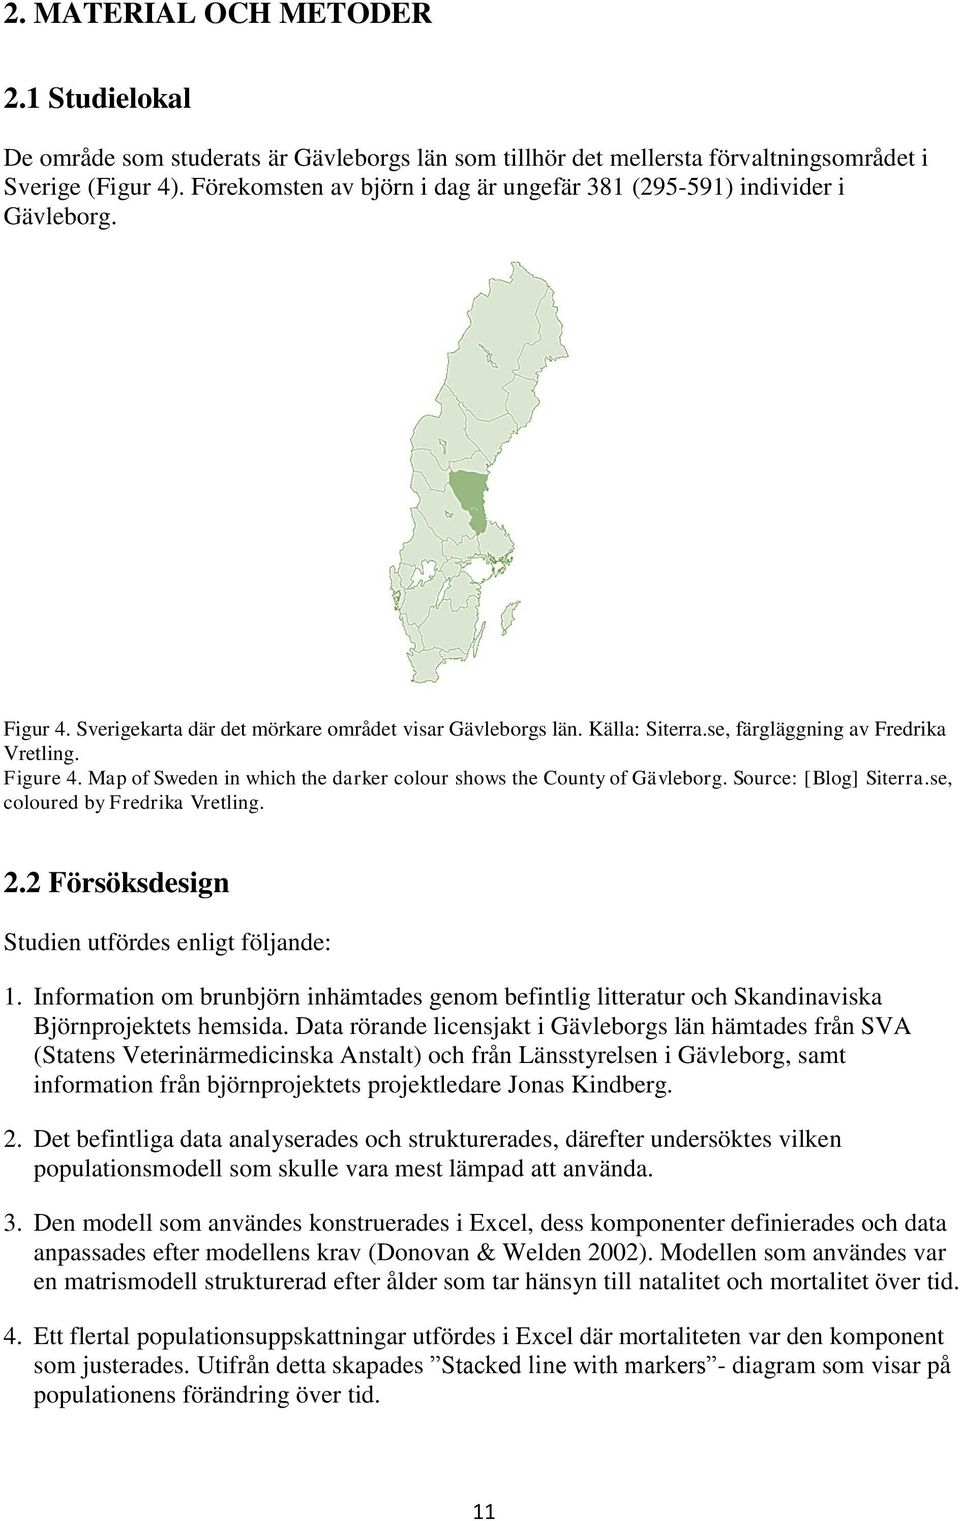 Figure 4. Map of Sweden in which the darker colour shows the County of Gävleborg. Source: [Blog] Siterra.se, coloured by Fredrika Vretling. 2.2 Försöksdesign Studien utfördes enligt följande: 1.